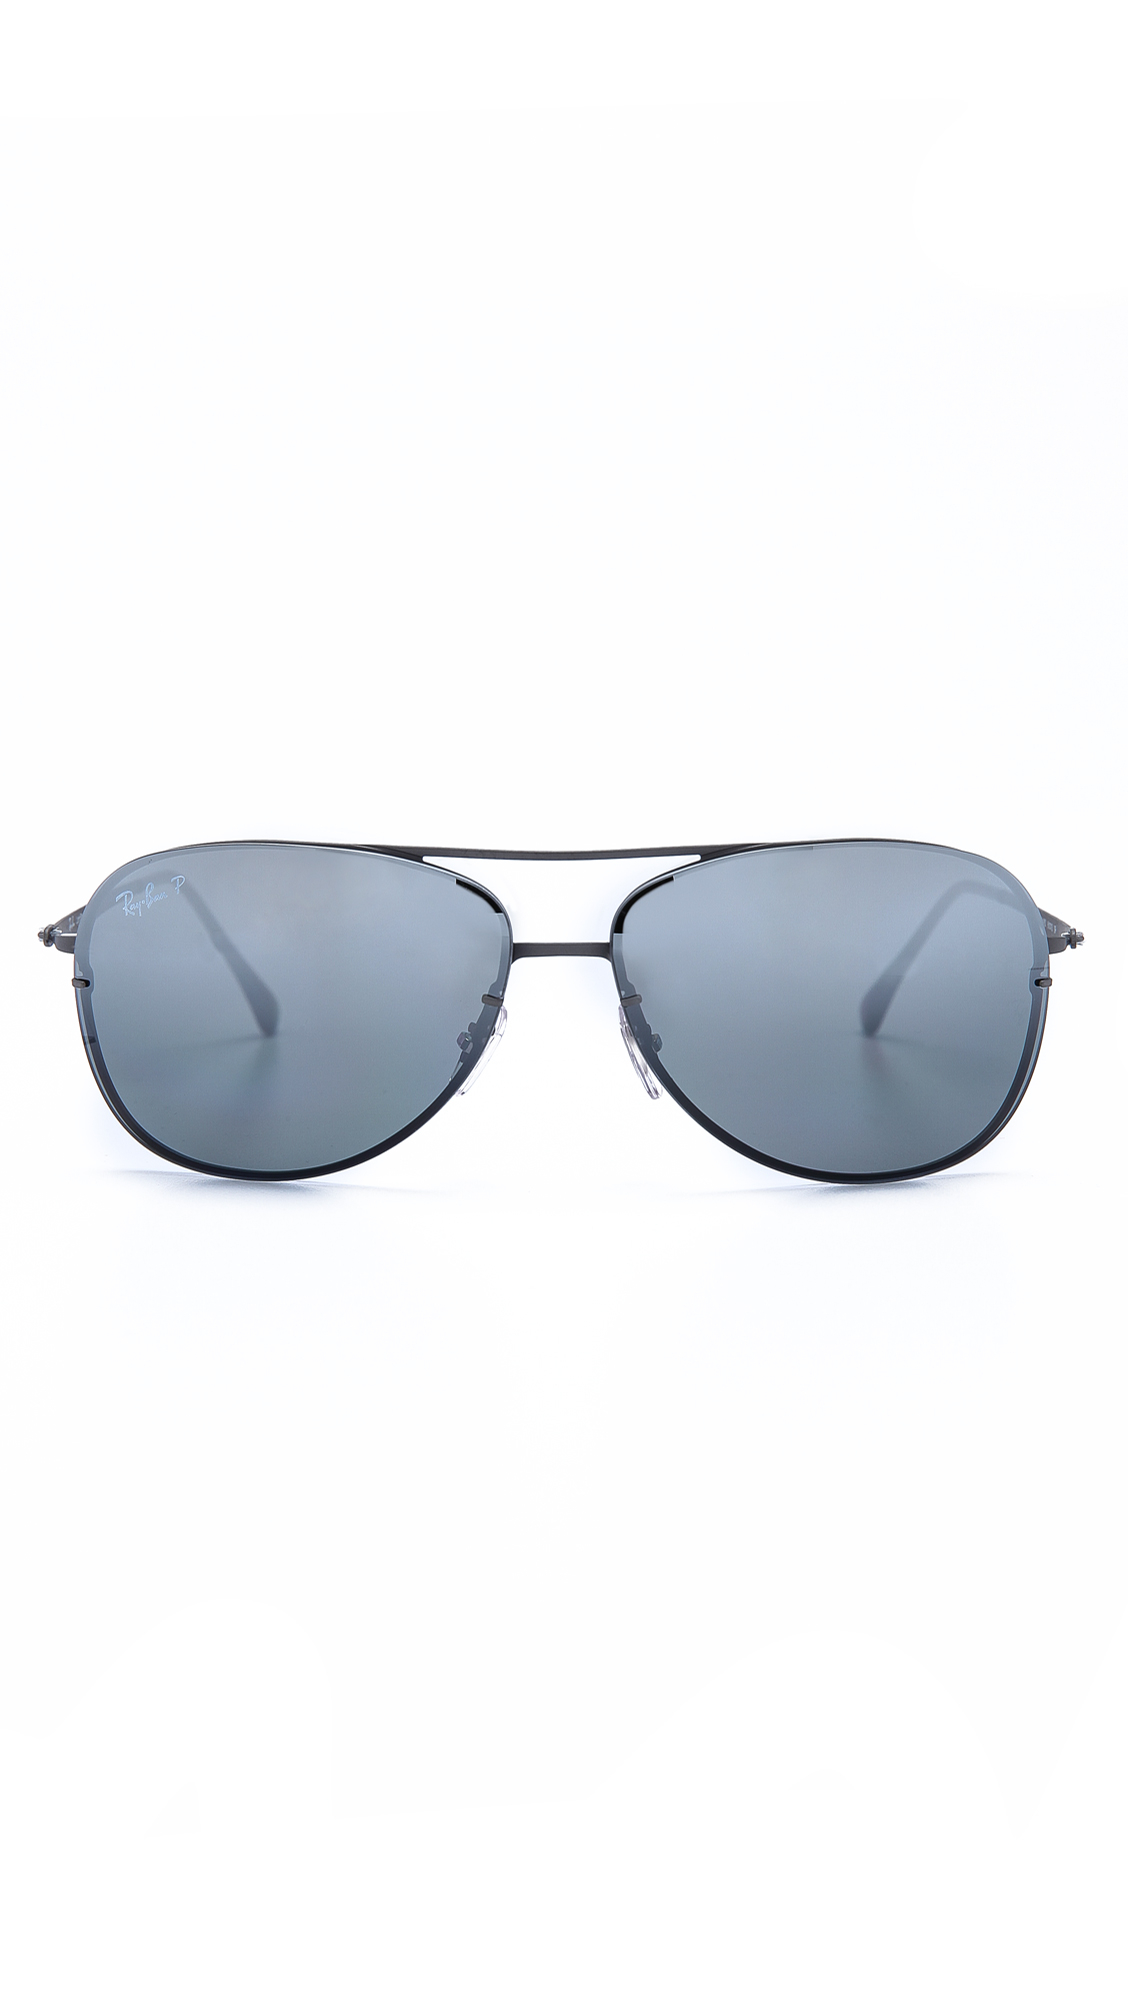 ray ban 3025 polarized night vision sunglasses  gallery